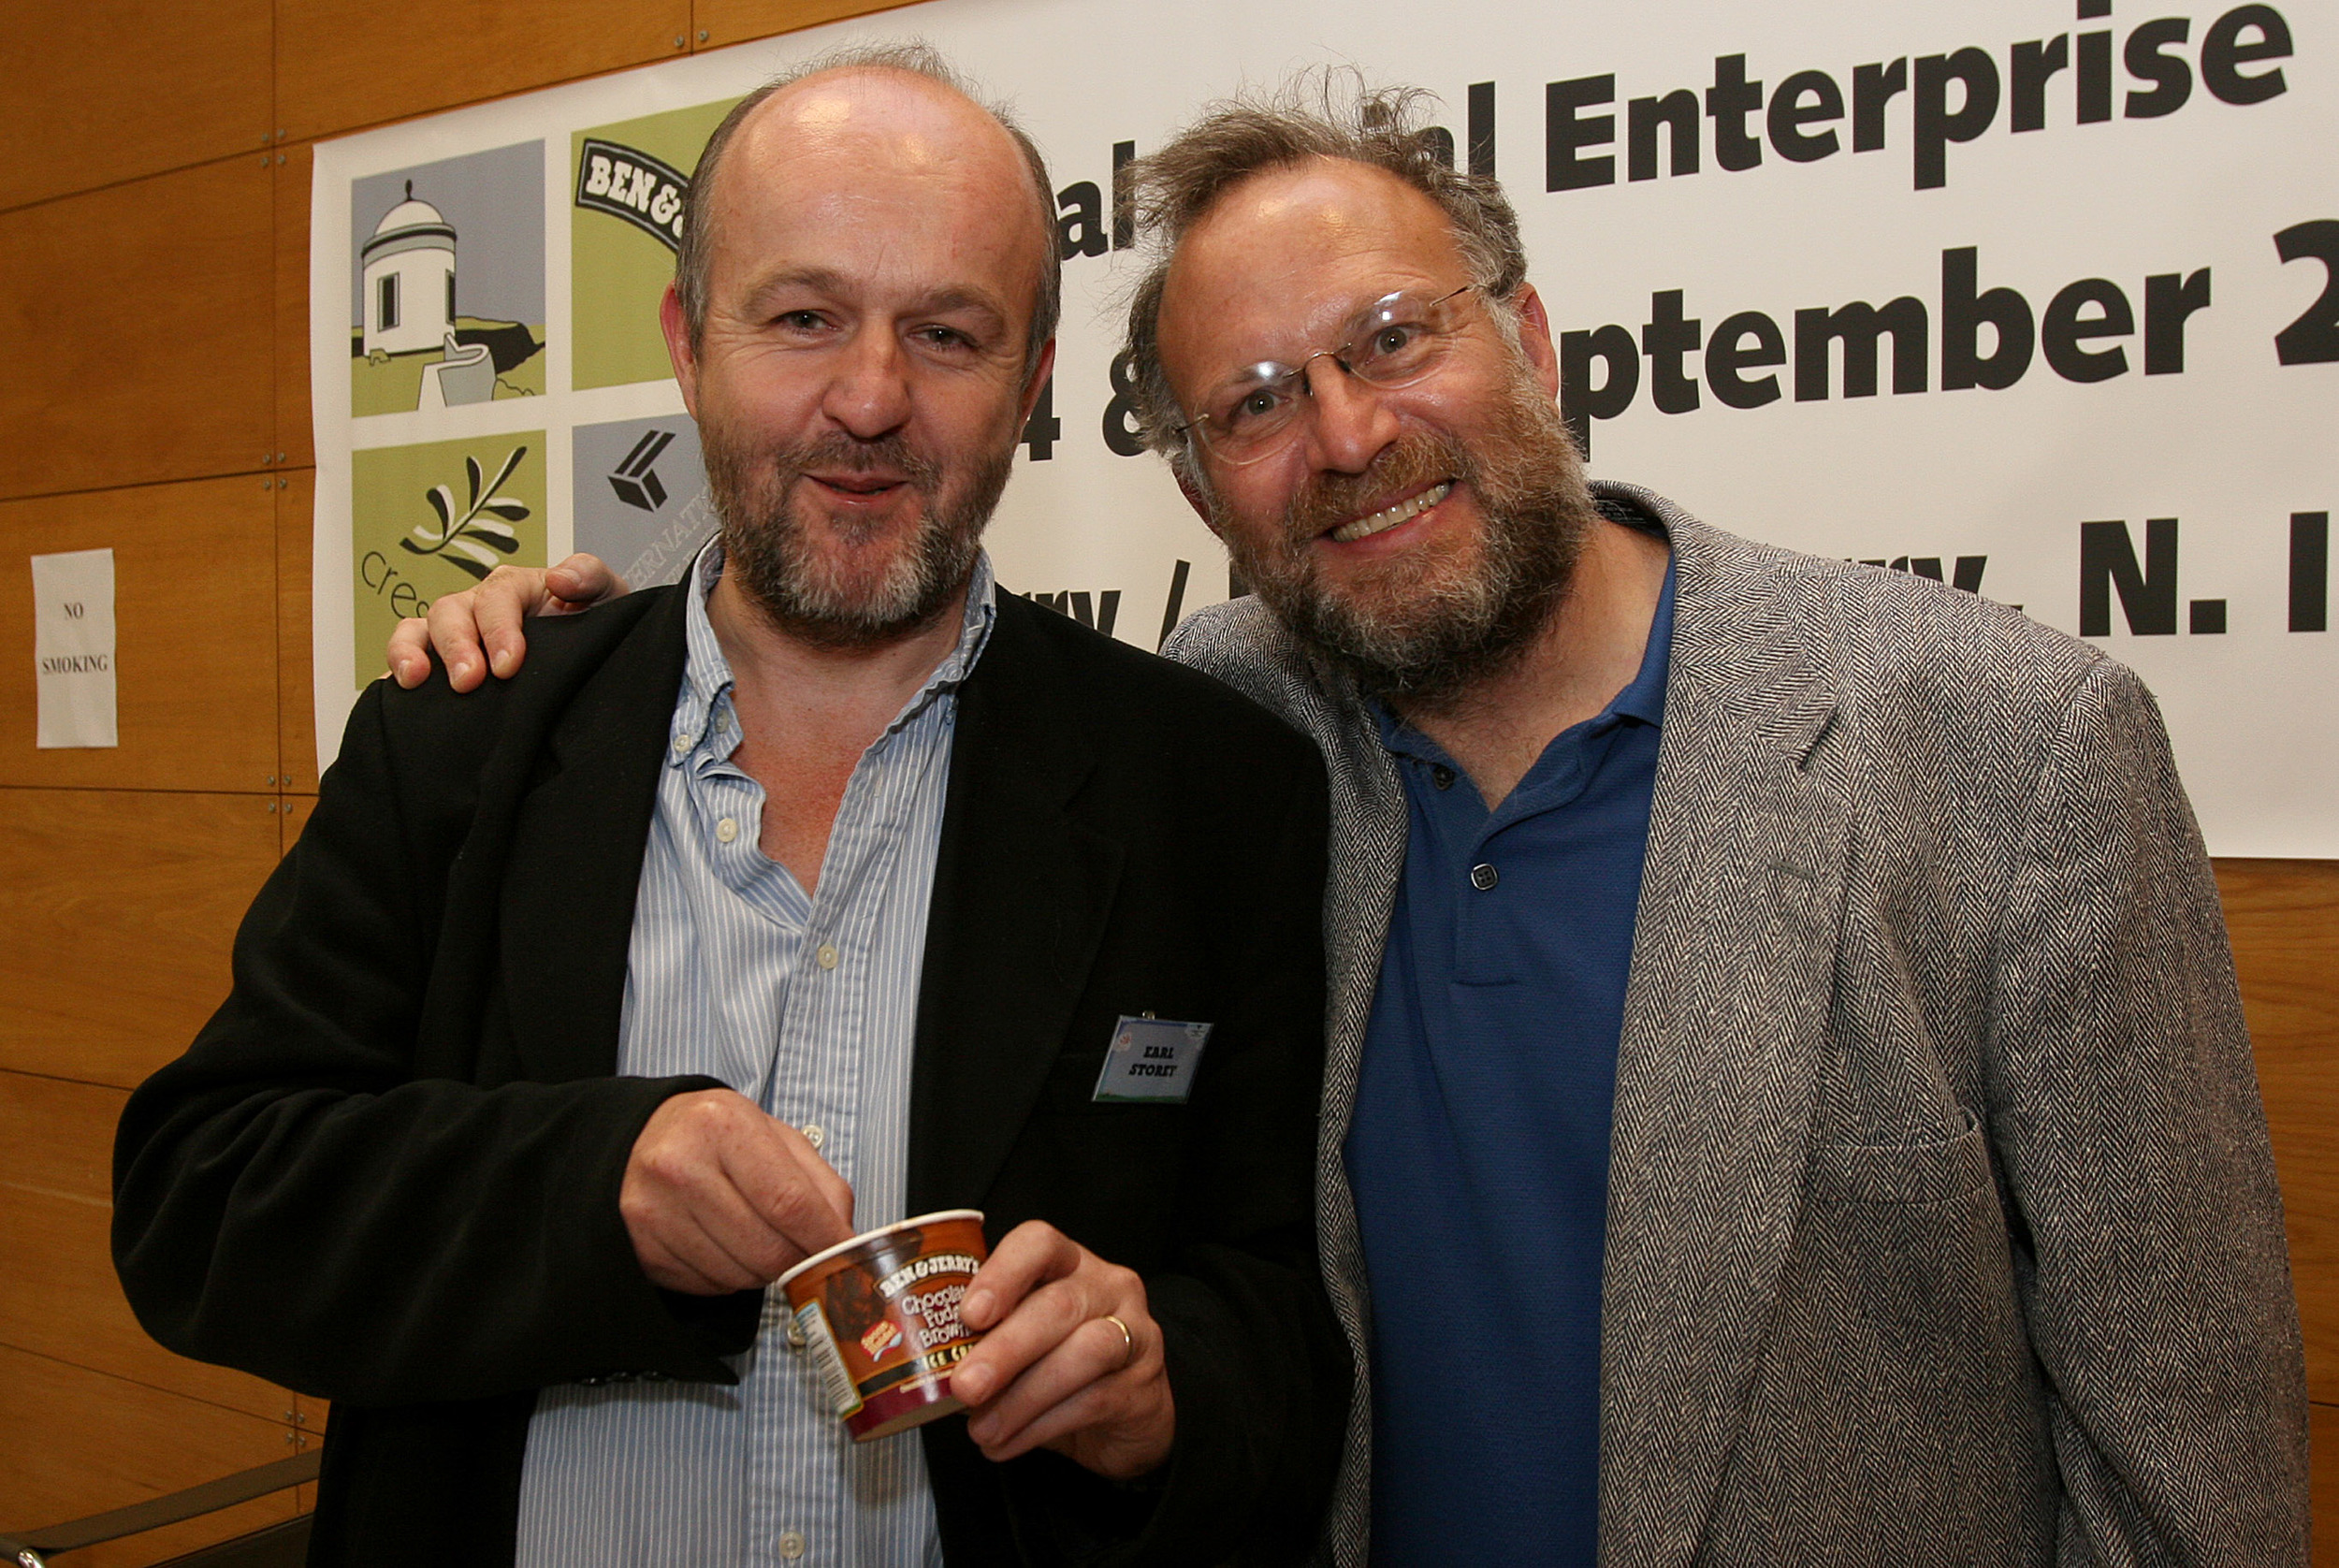 Earl Storey interviews Jerry Greenfield (Ben & Jerry's) on Leadership